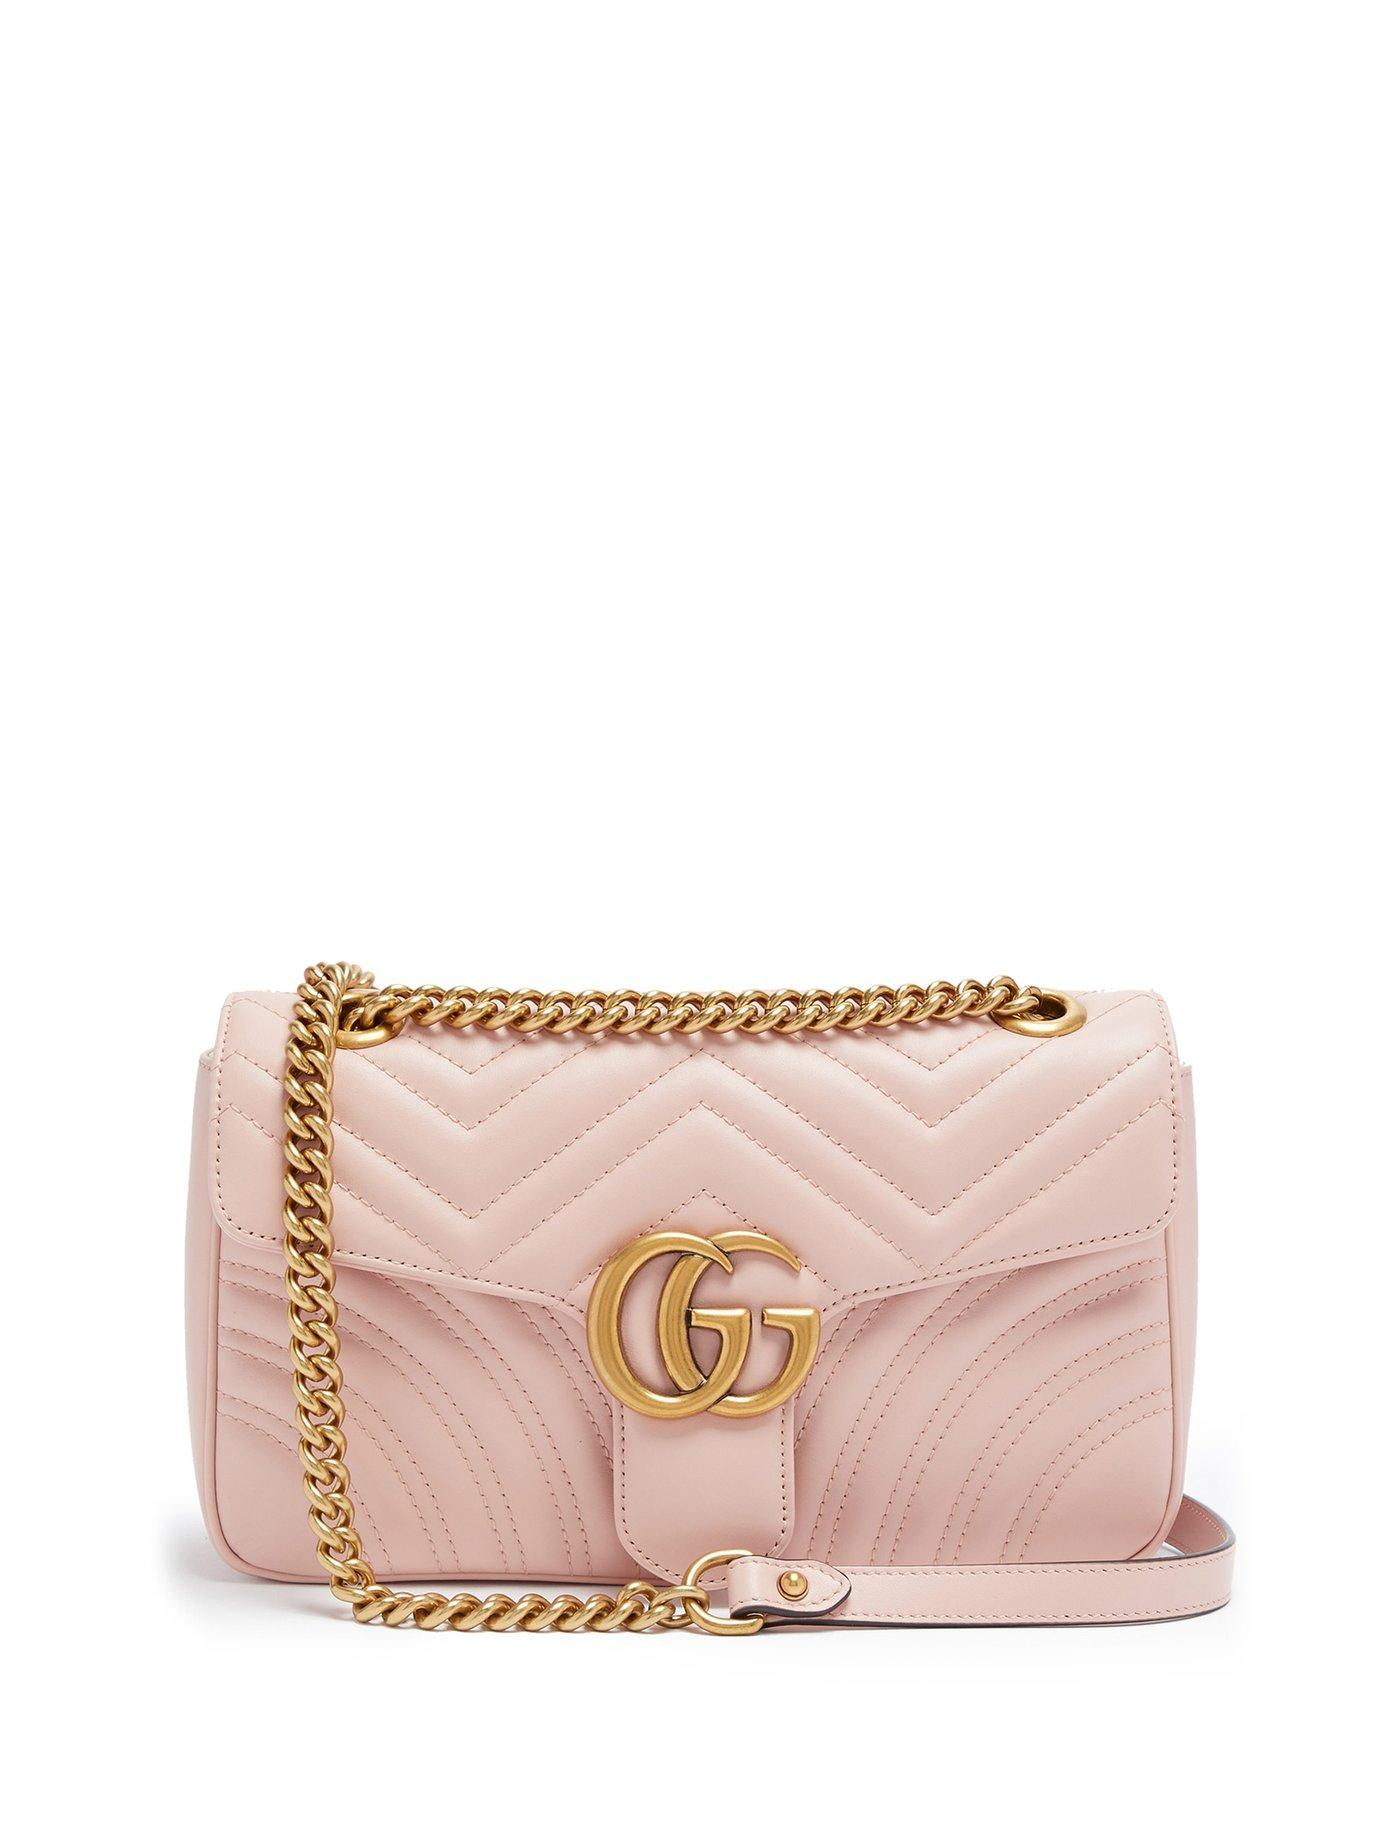 a0d3dc89da3 Lyst - Gucci Gg Marmont Small Quilted Leather Shoulder Bag in Pink ...